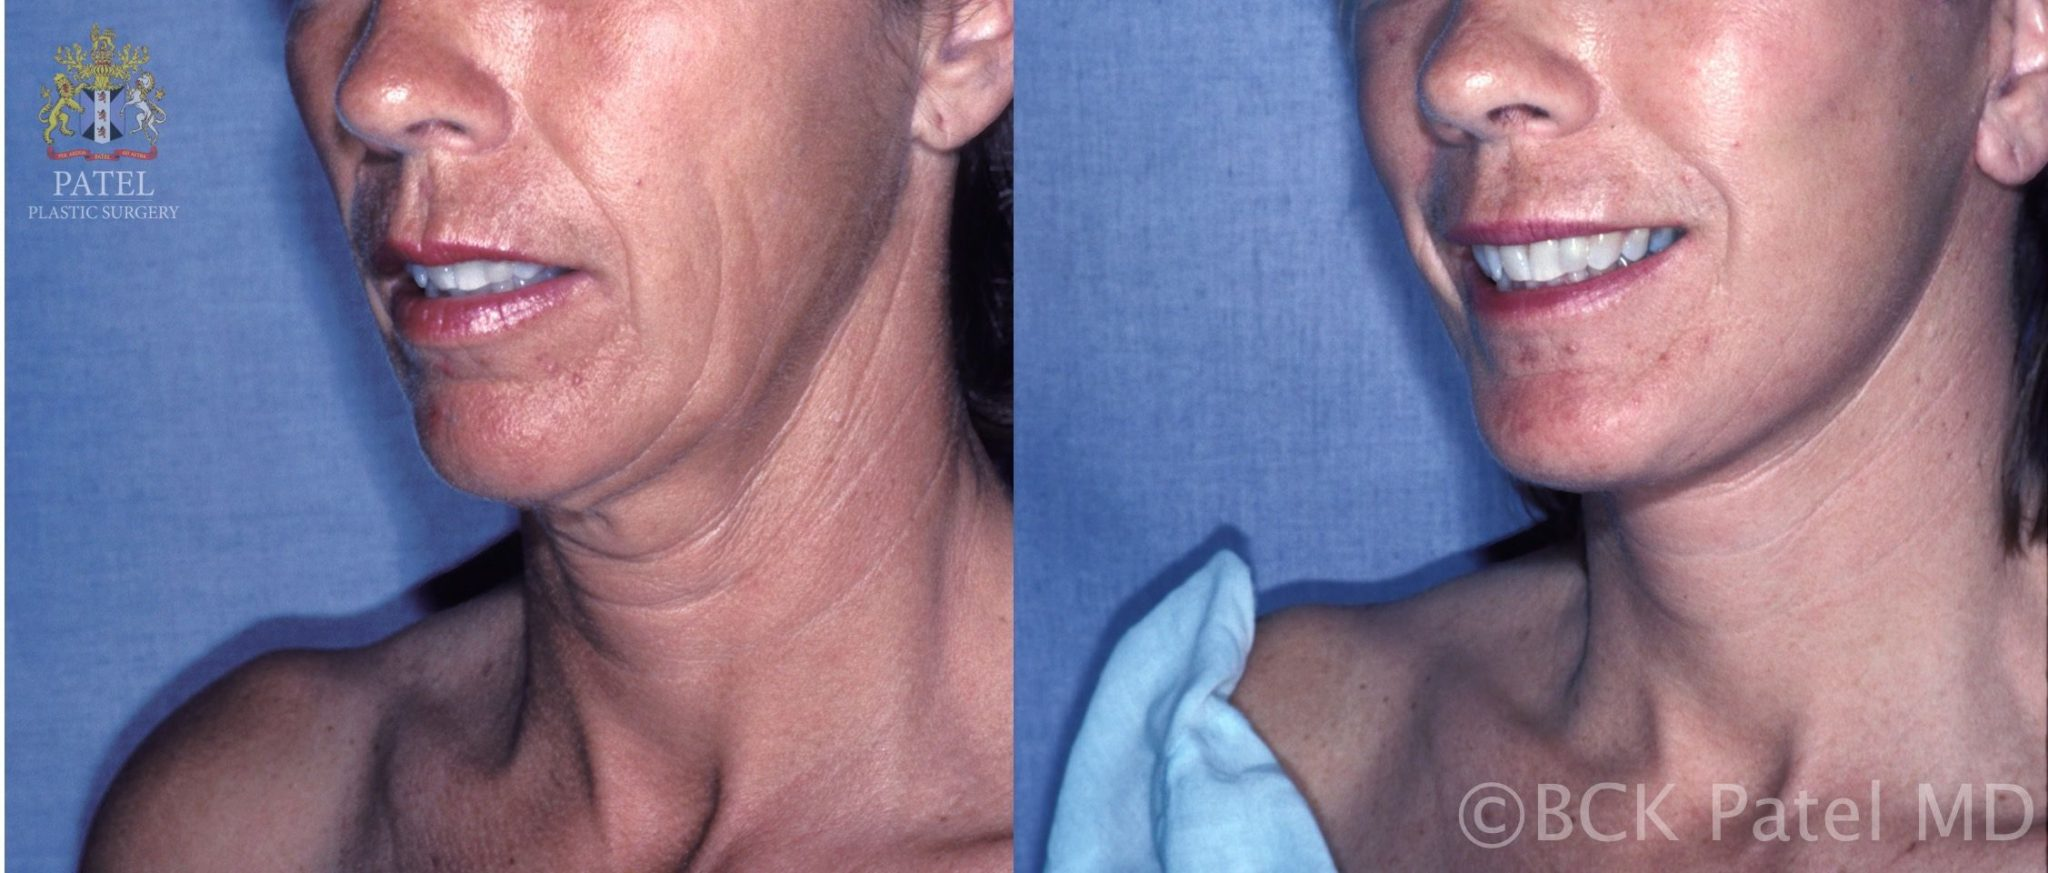 englishsurgeon.com The gold standard for necklifts is a proper facelift which these photos illustrate. BCK patel Md, FRCS, Salt Lake City